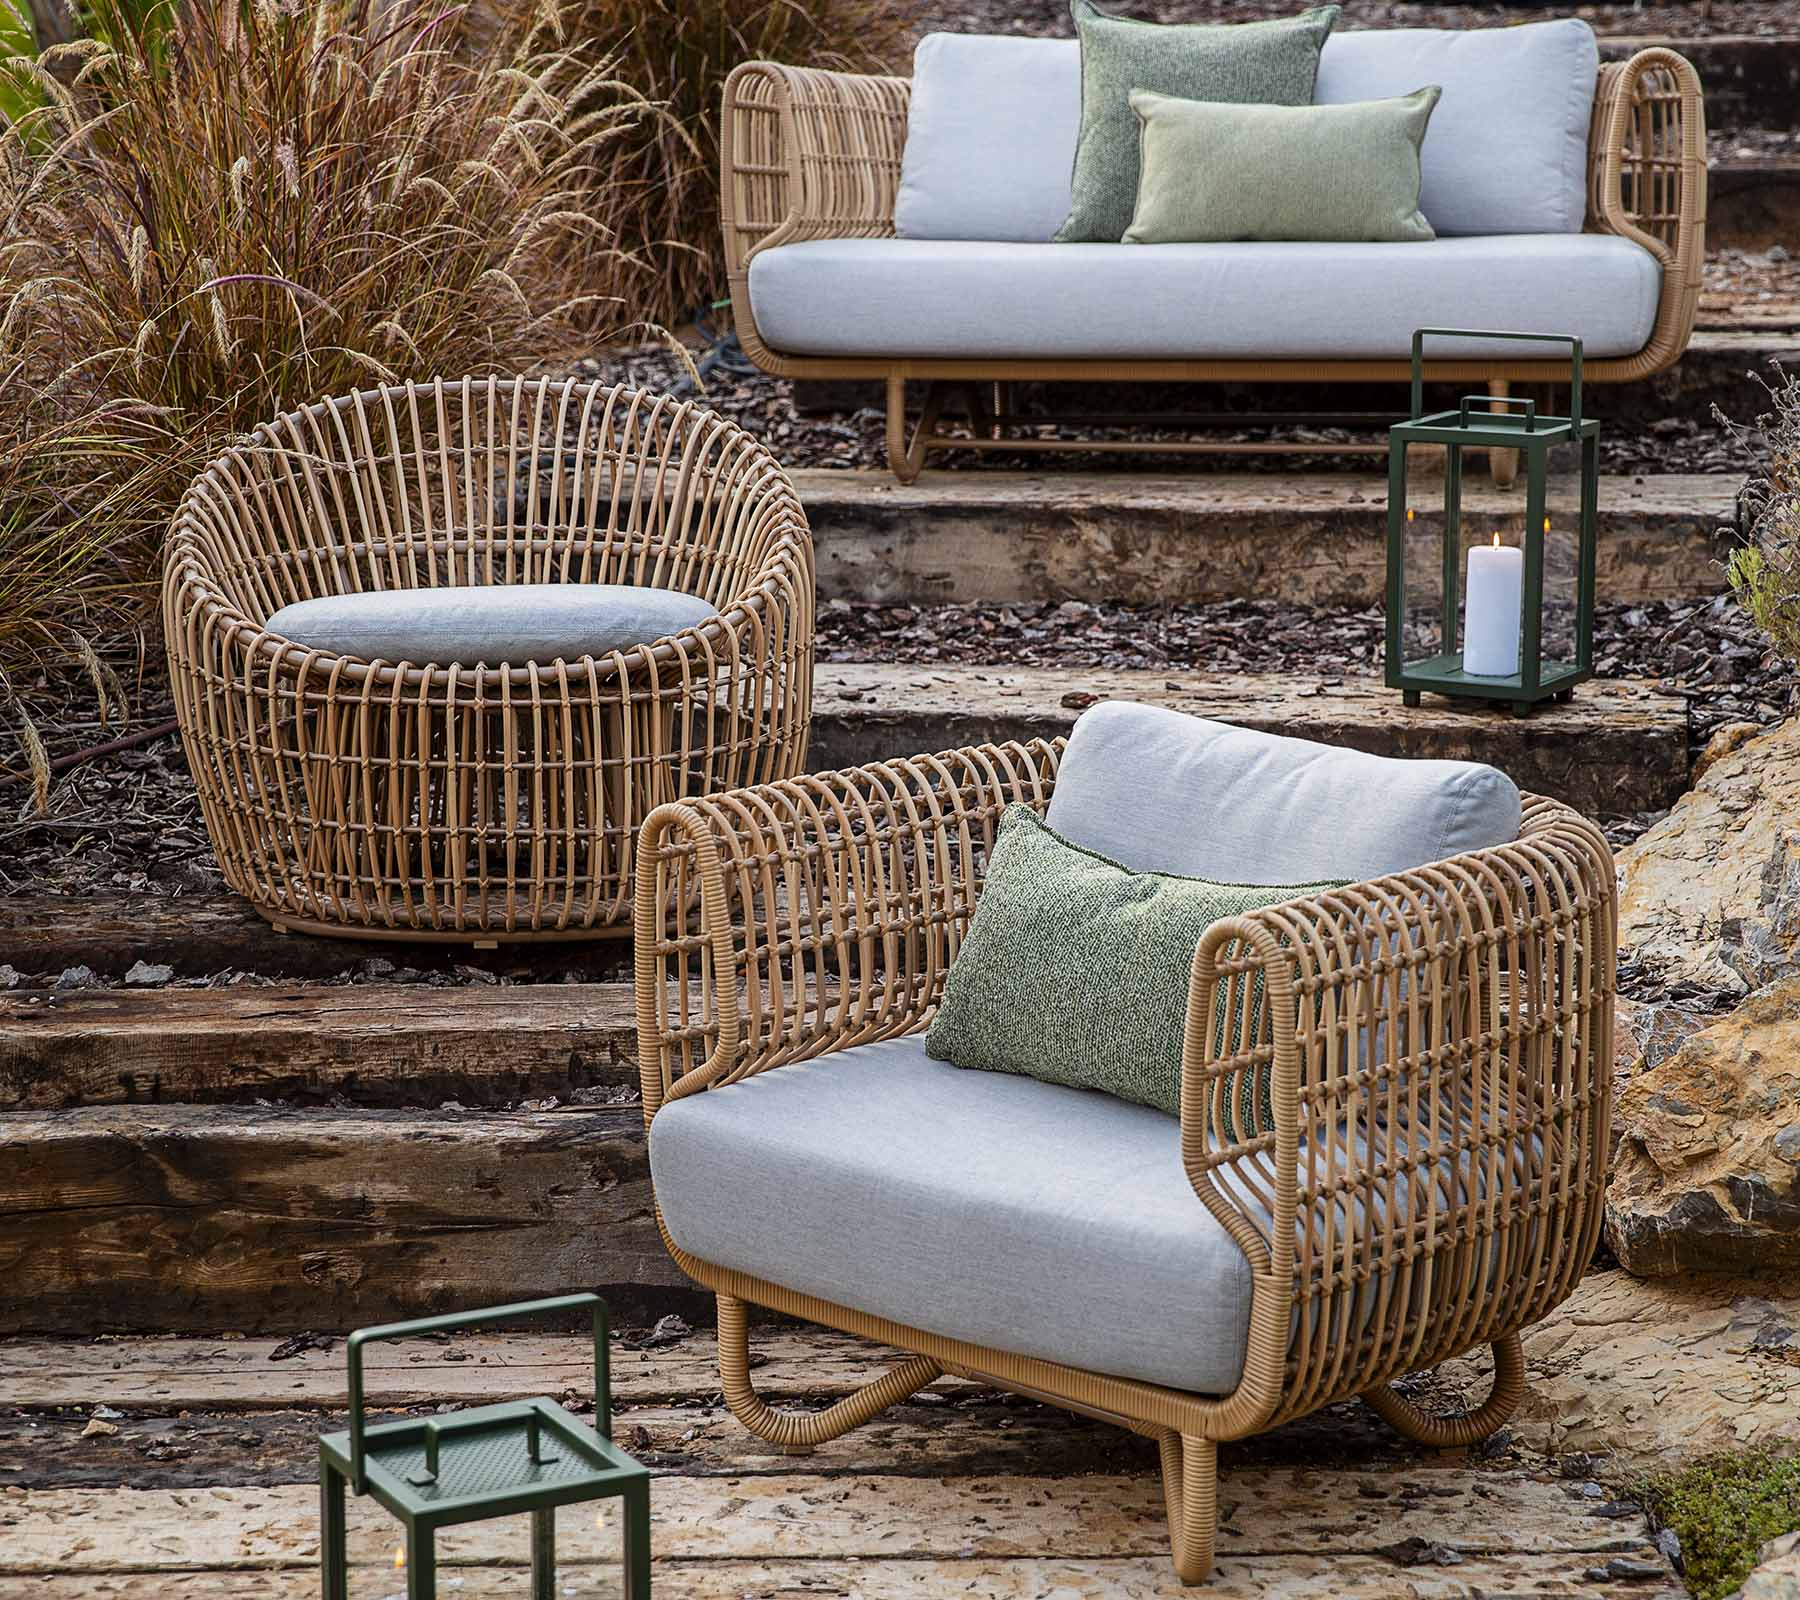 Nest Round Lounge Chair Outdoor, Round Lounge Chair Outdoor Cushions